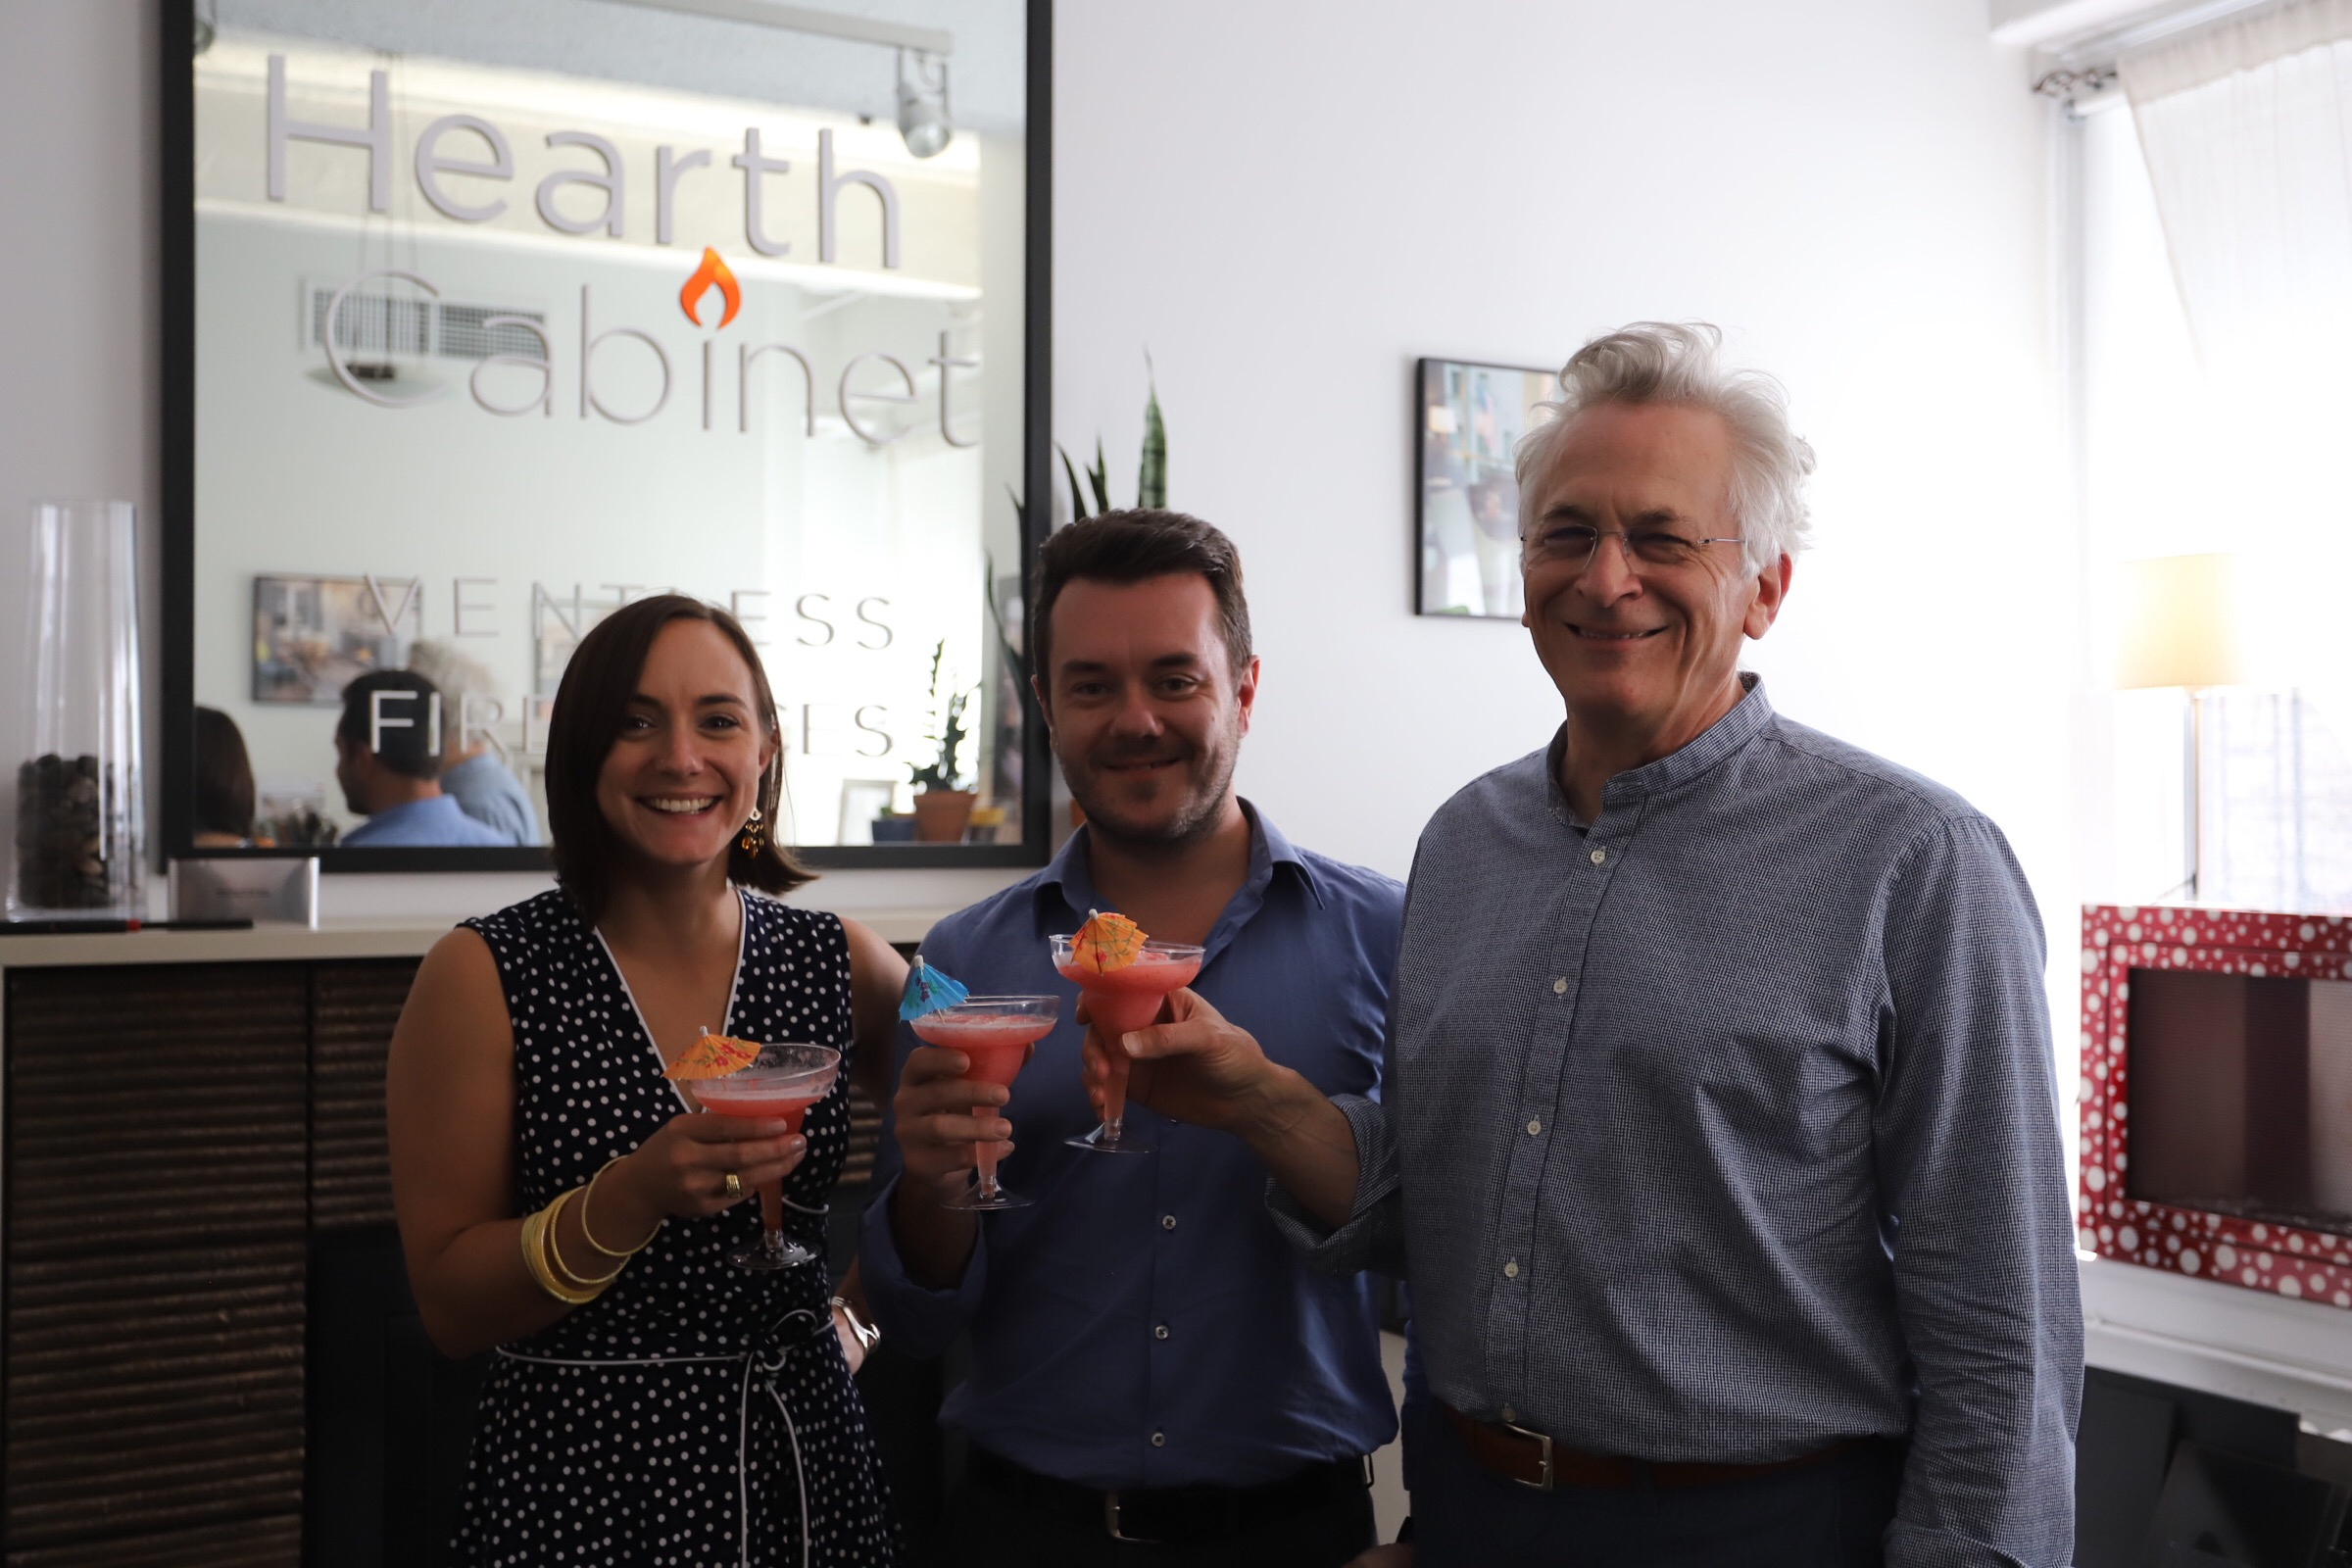 Pictured: Arthur Lasky, HearthCabinet® founder & NCARB & HearthCabinet® team members Sara Check & Antonio Curto